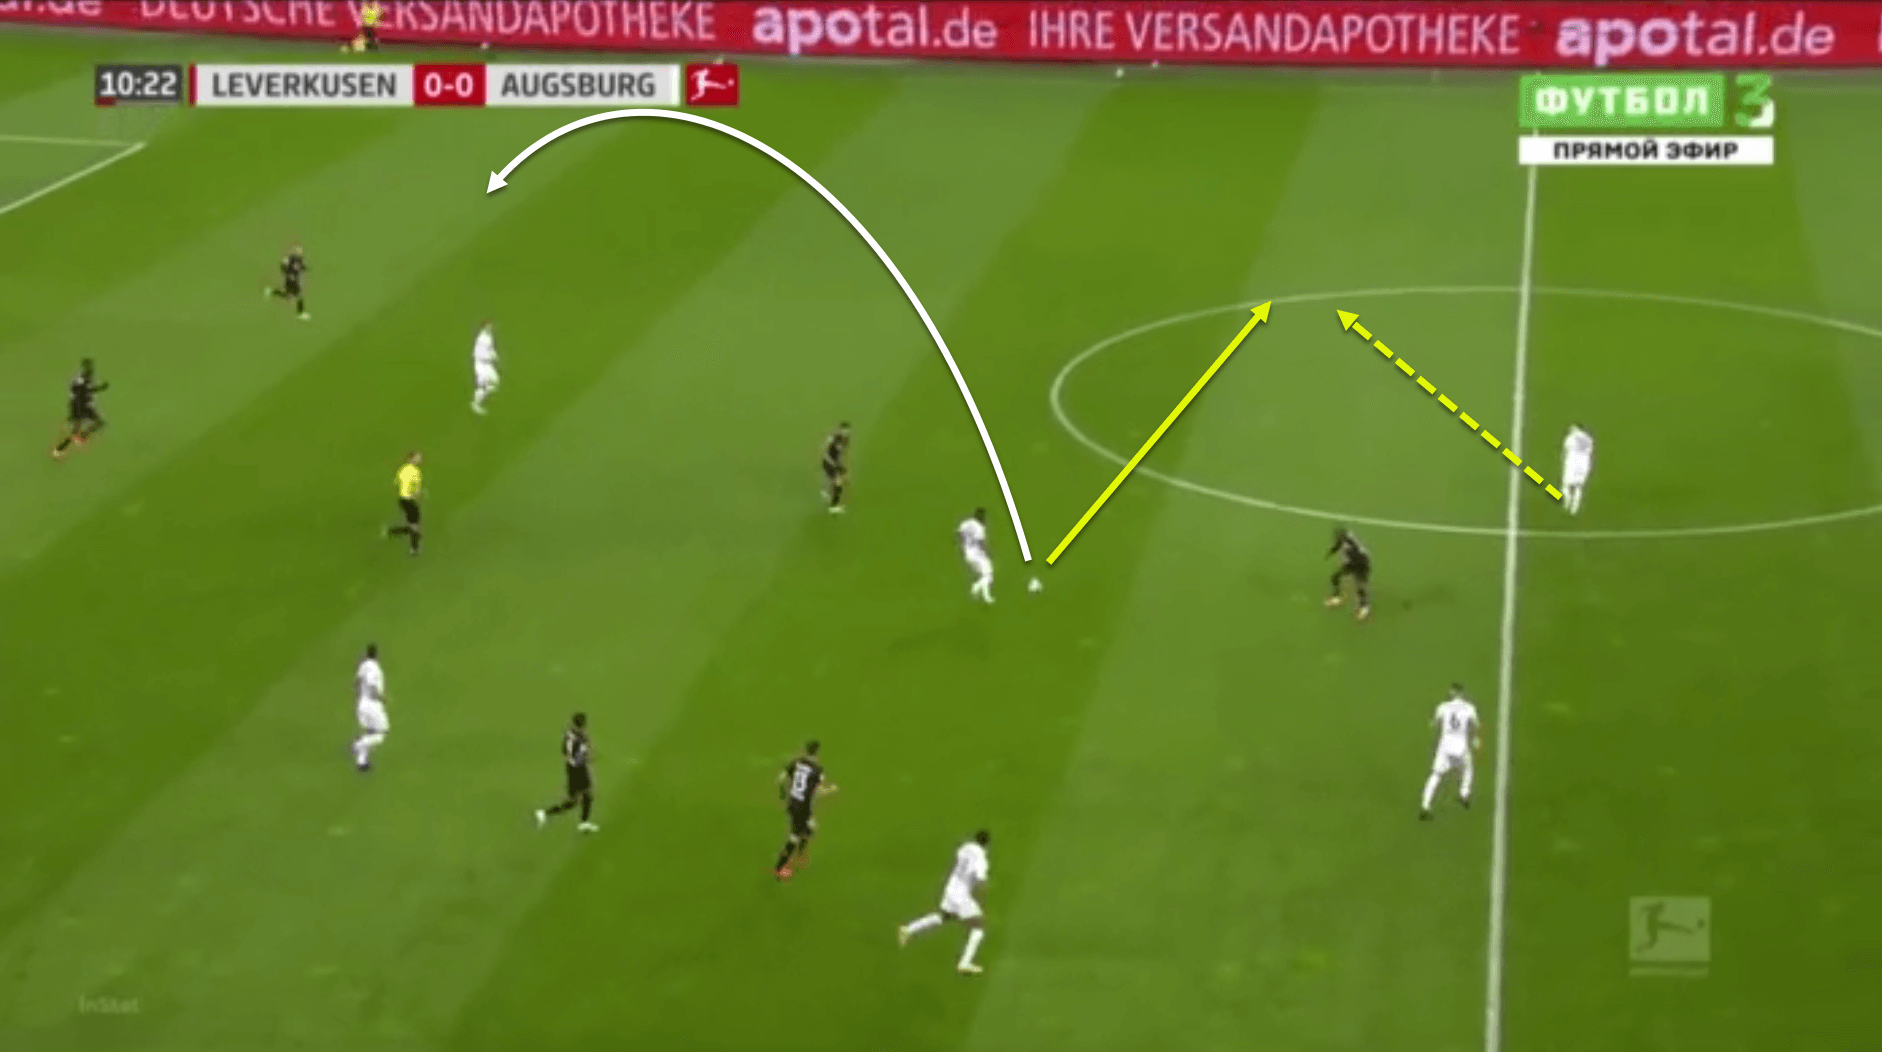 Bundesliga 2020/21: Bayer Leverkusen vs Augsburg - tactical analysis tactics